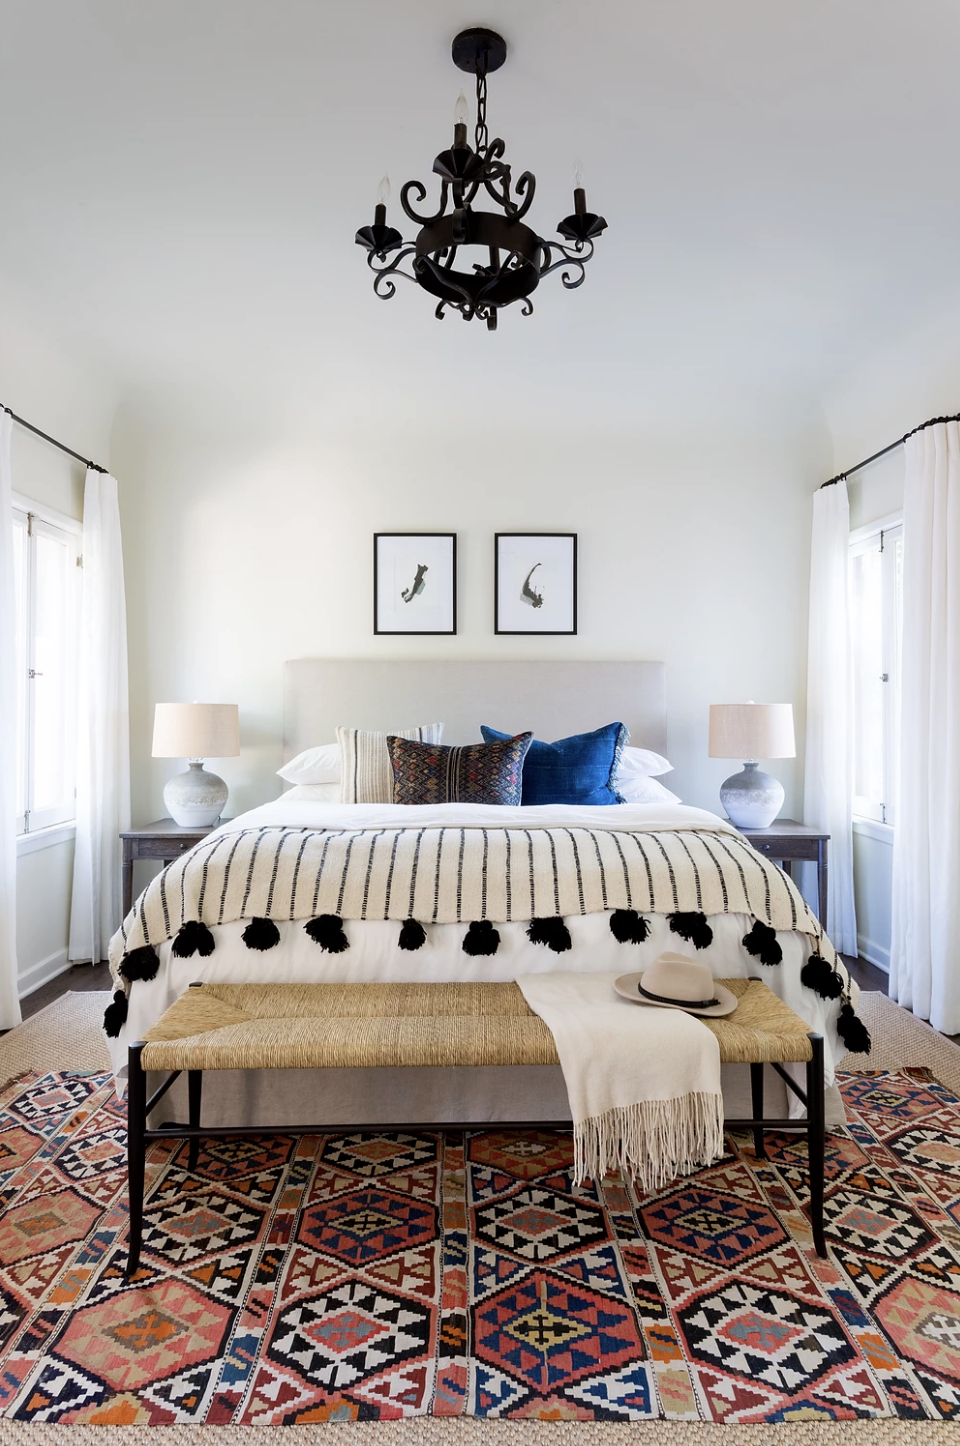 This Bright Boho Bedroom By Katie Hodges Gets Recreated For Less By  Copycatchic Luxe Living For Less Budget Home Decor And Design Daily Finds, Home  Trends ...